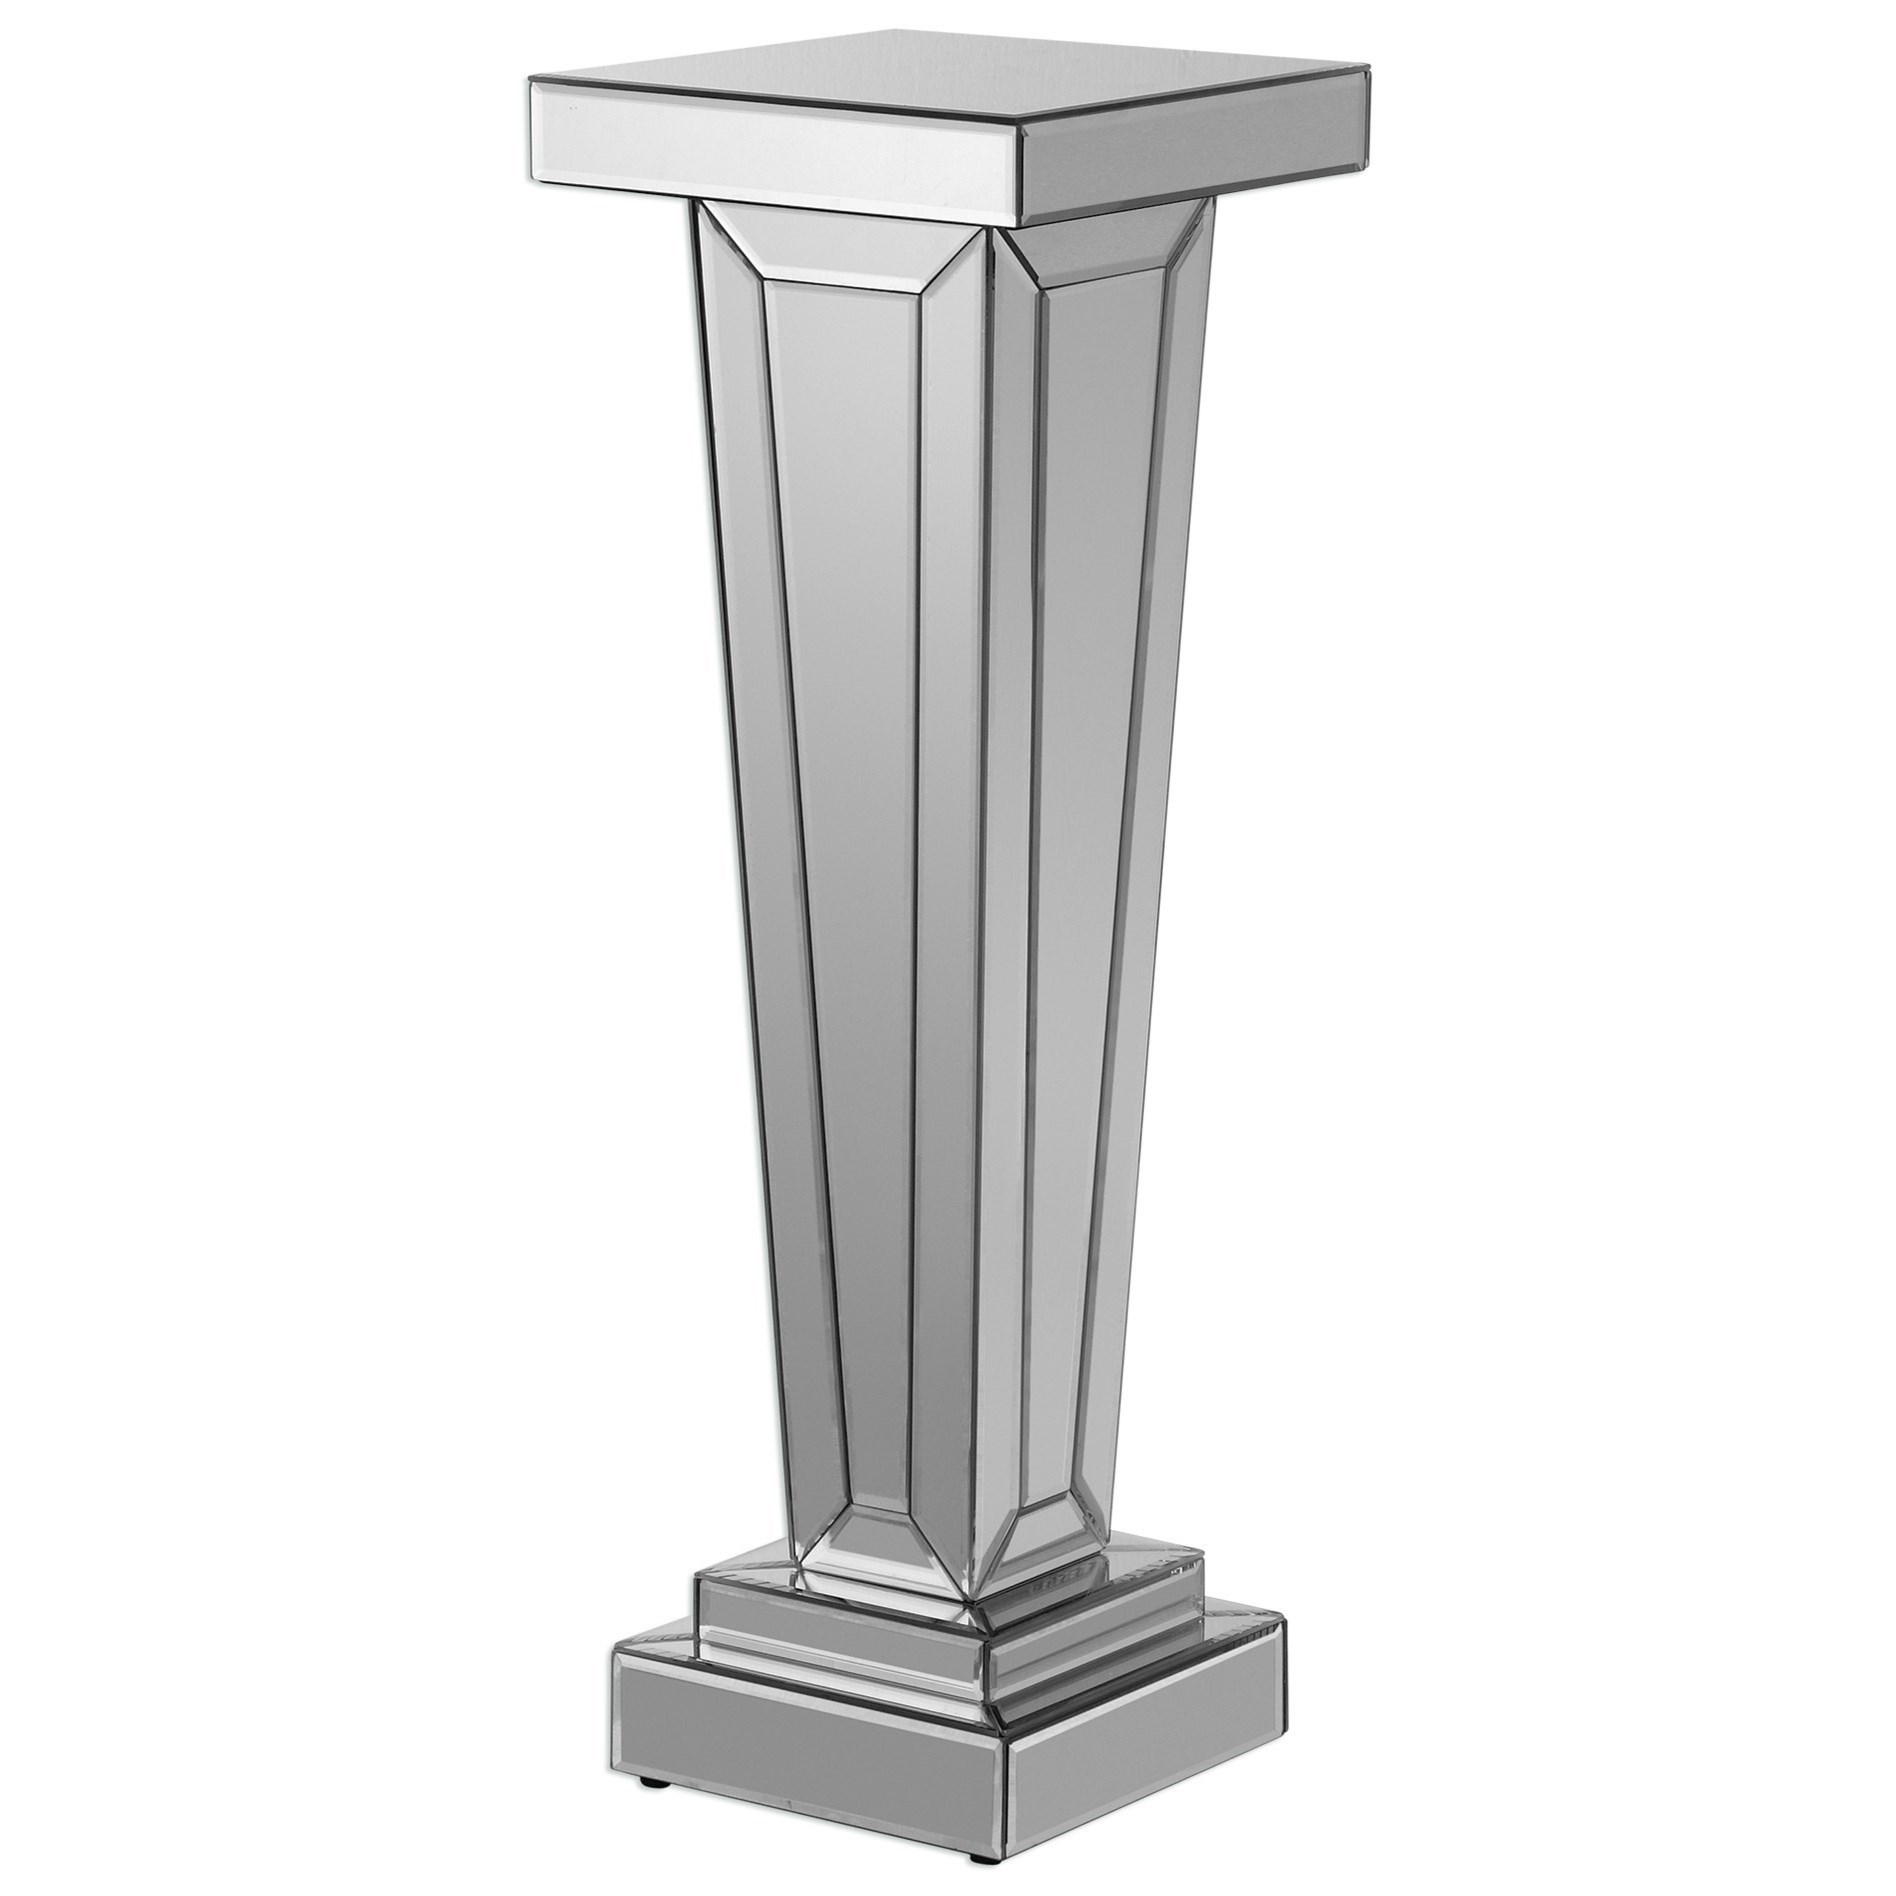 Uttermost Accent Furniture Alanis Plant Stand - Item Number: 24669